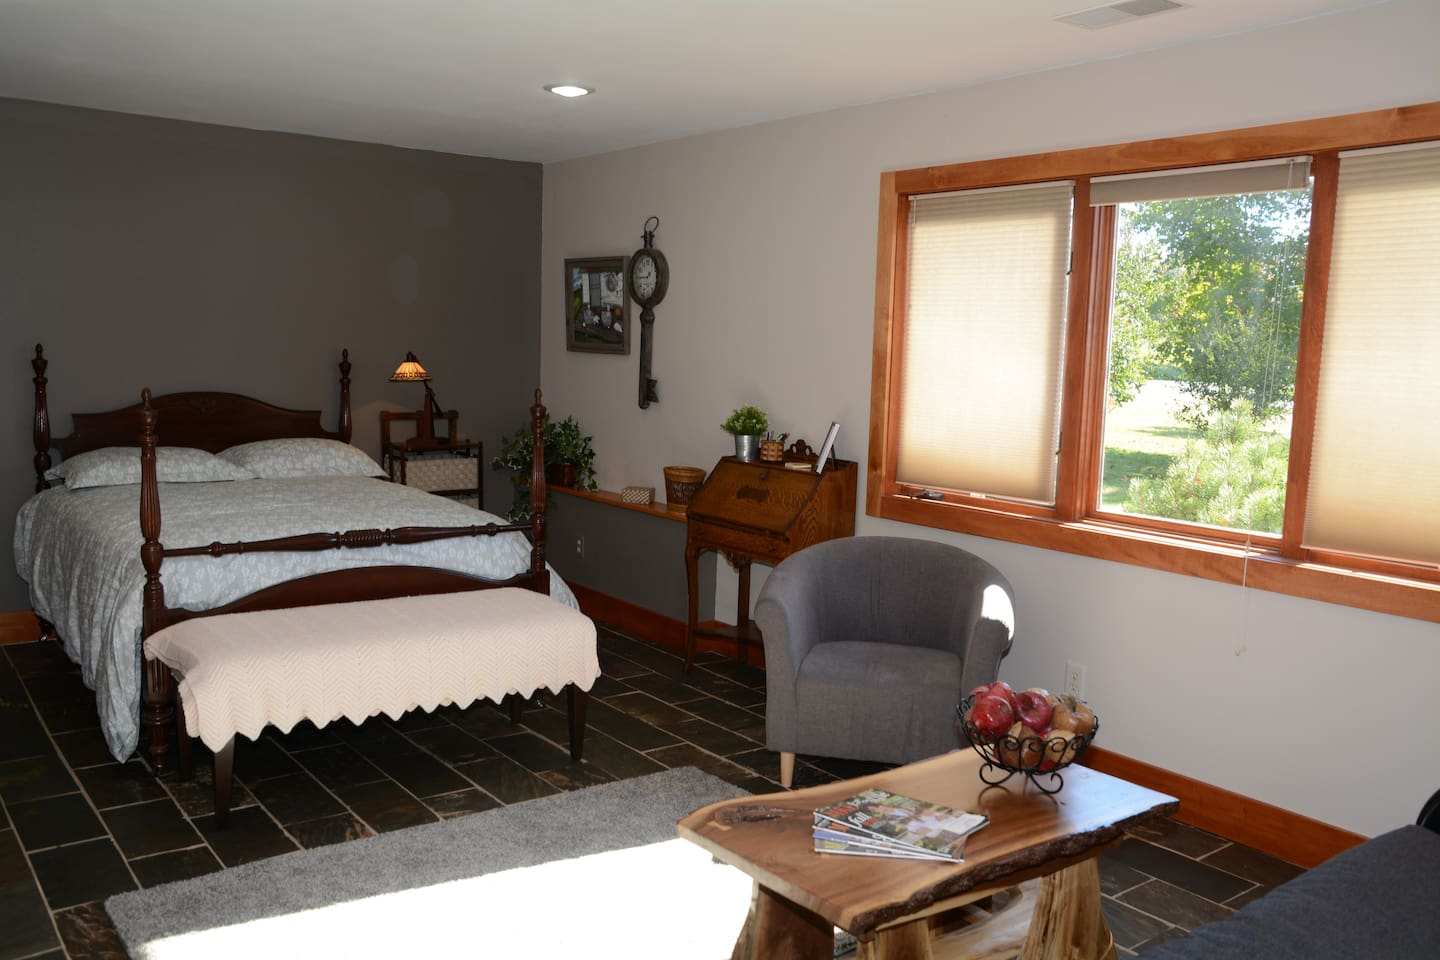 Spacious yet cozy room with large windows.  Full-size bed and futon make plenty of sleeping space available.